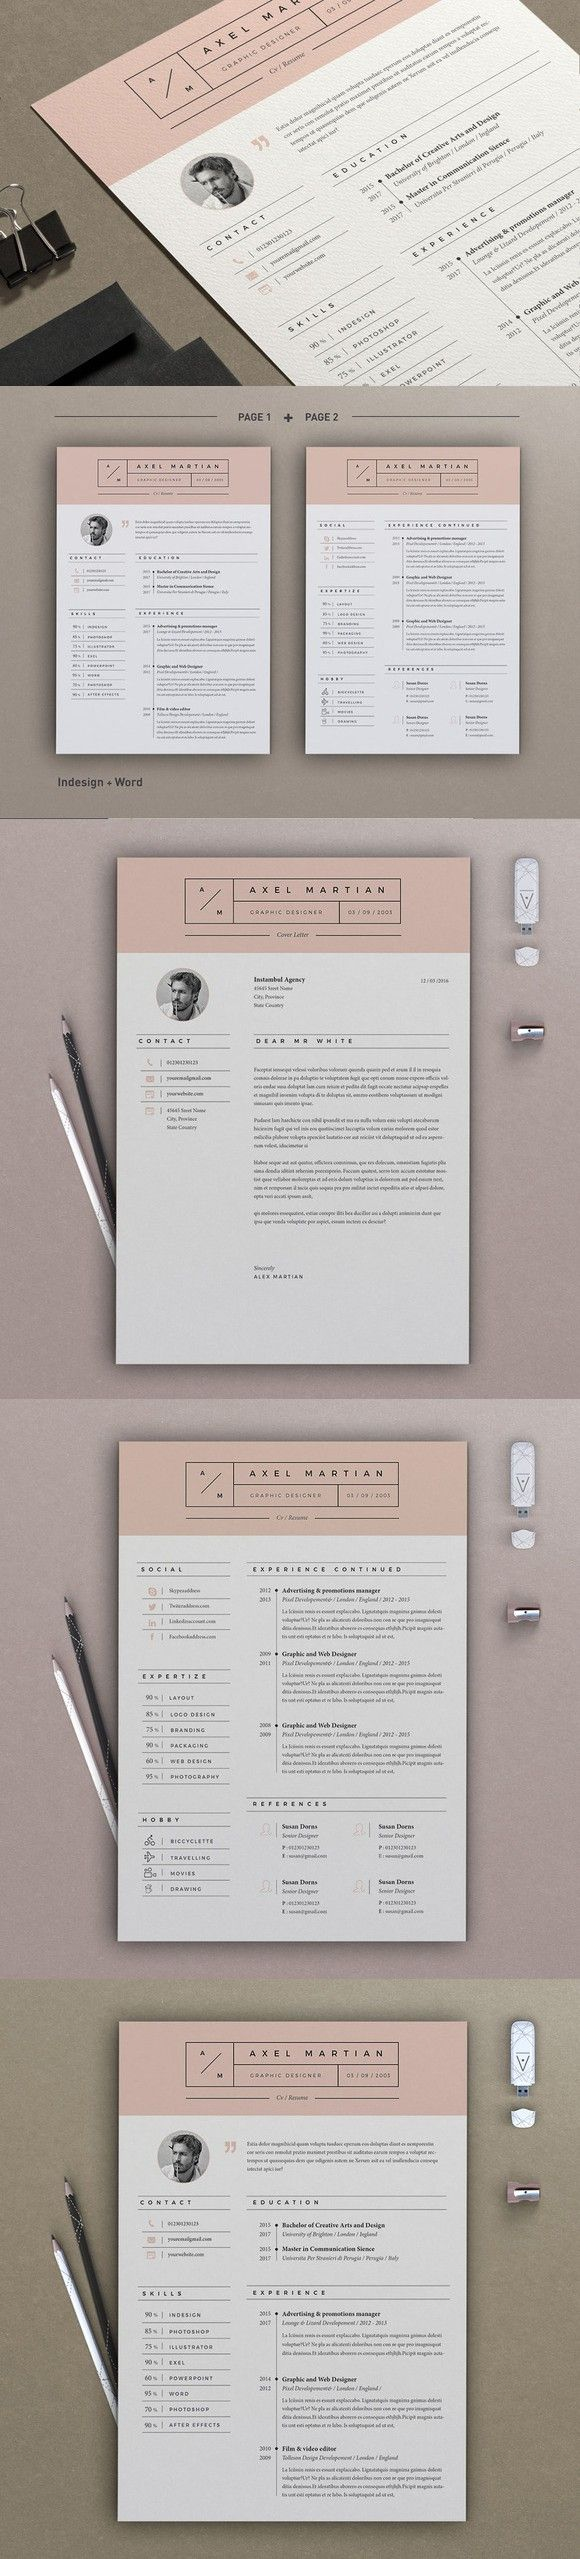 Resume Axel 2 pages 52 best Resume